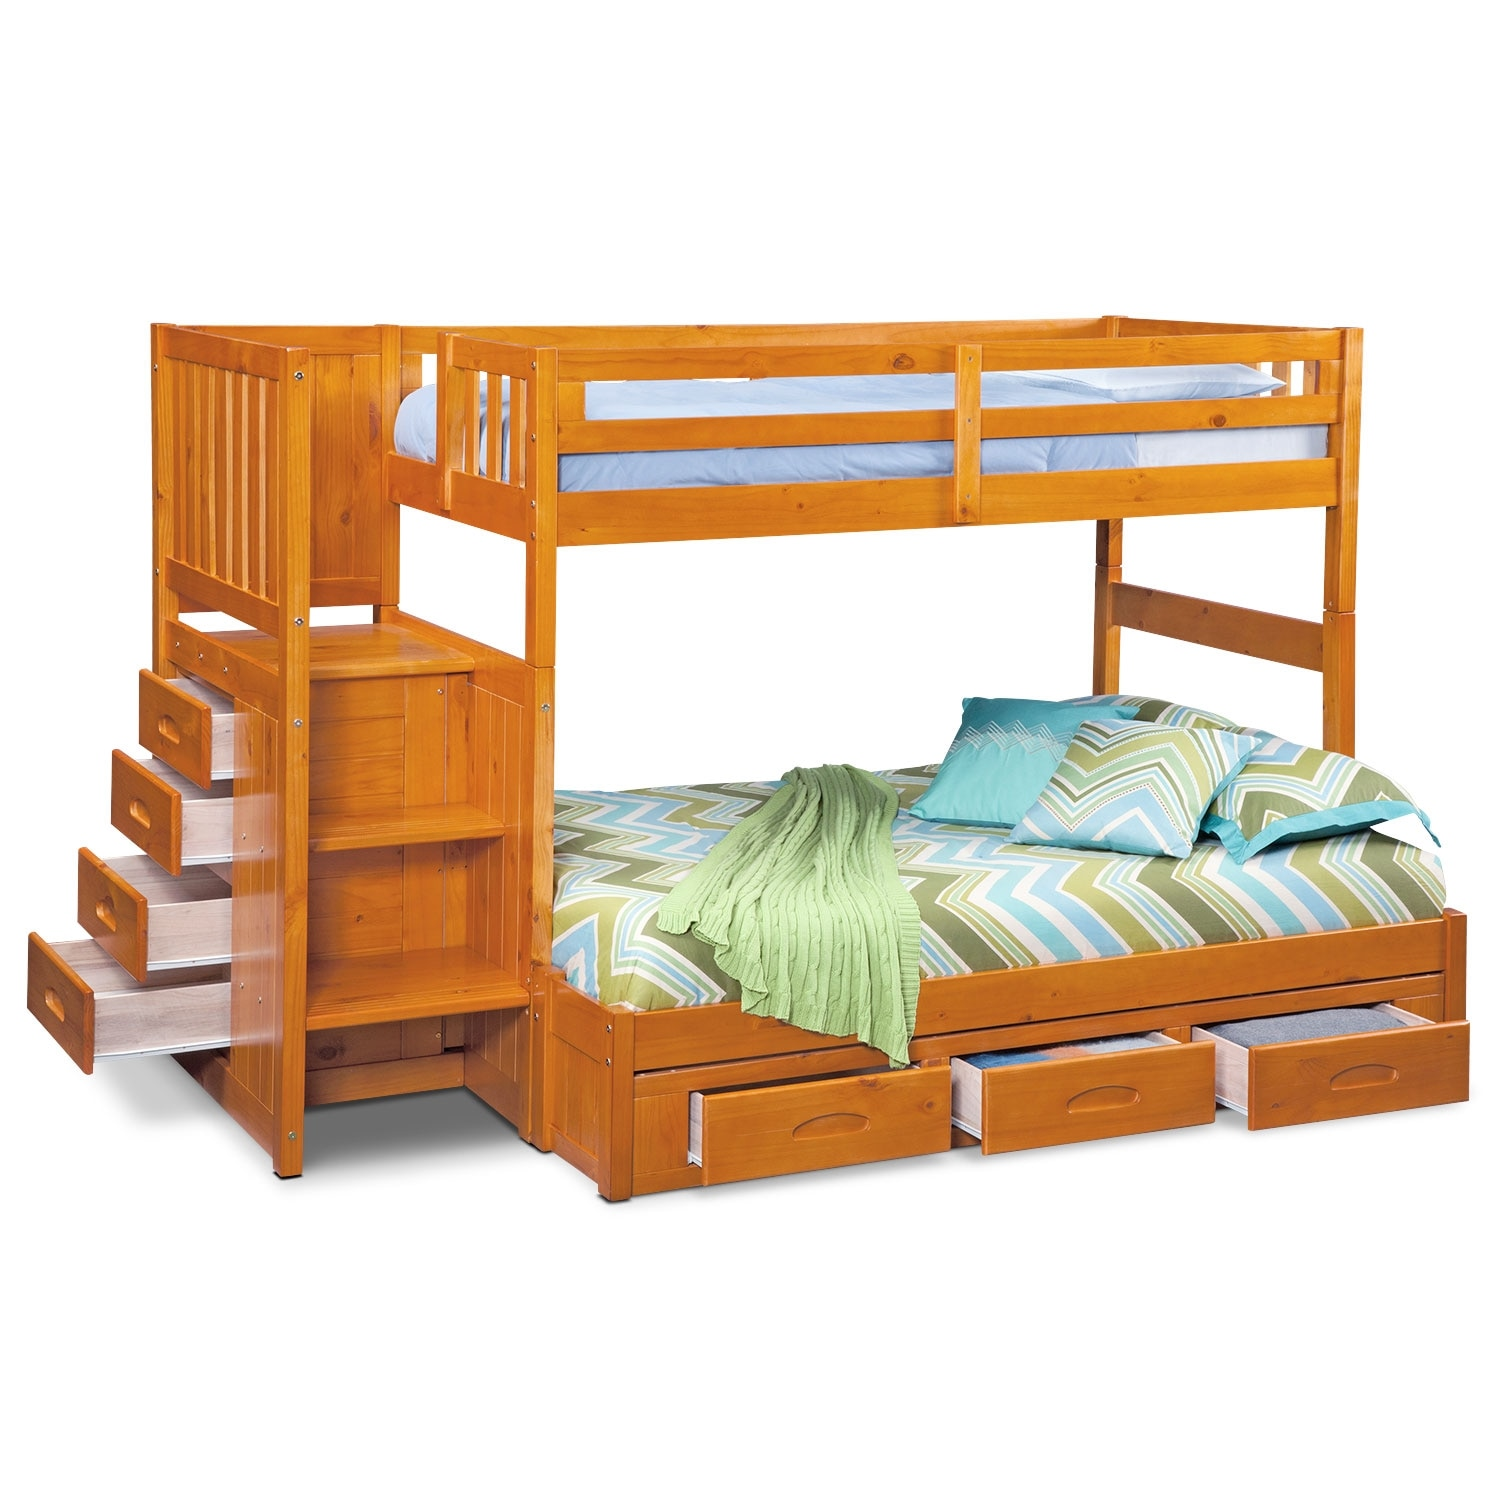 Ranger twin over full bunk bed with storage stairs underbed drawers pine value city furniture - Bunk bed with drawer steps ...